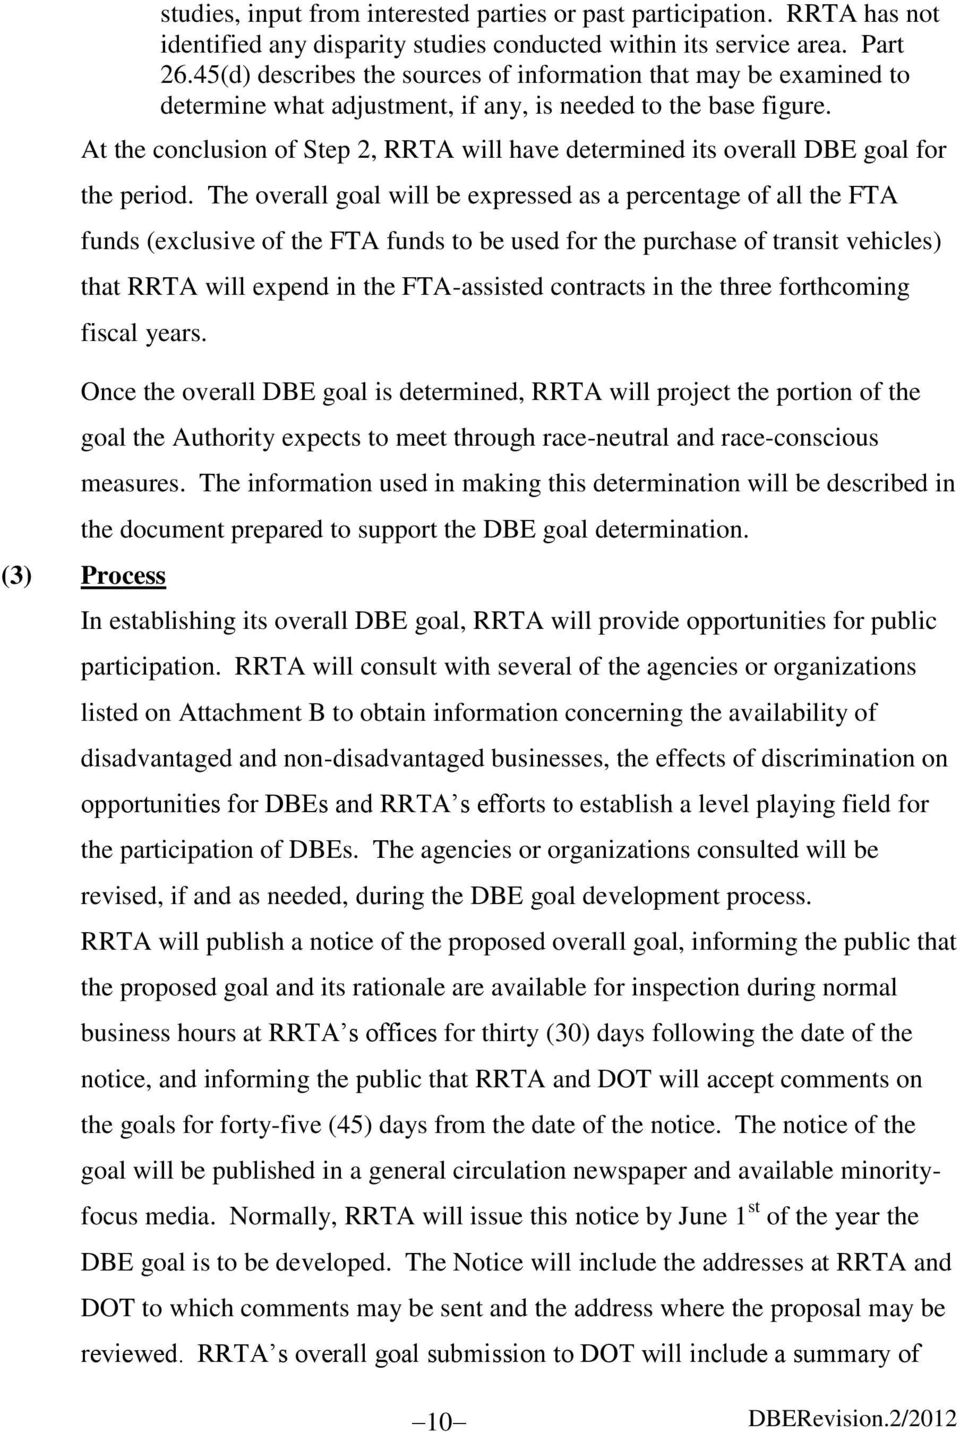 At the conclusion of Step 2, RRTA will have determined its overall DBE goal for the period.